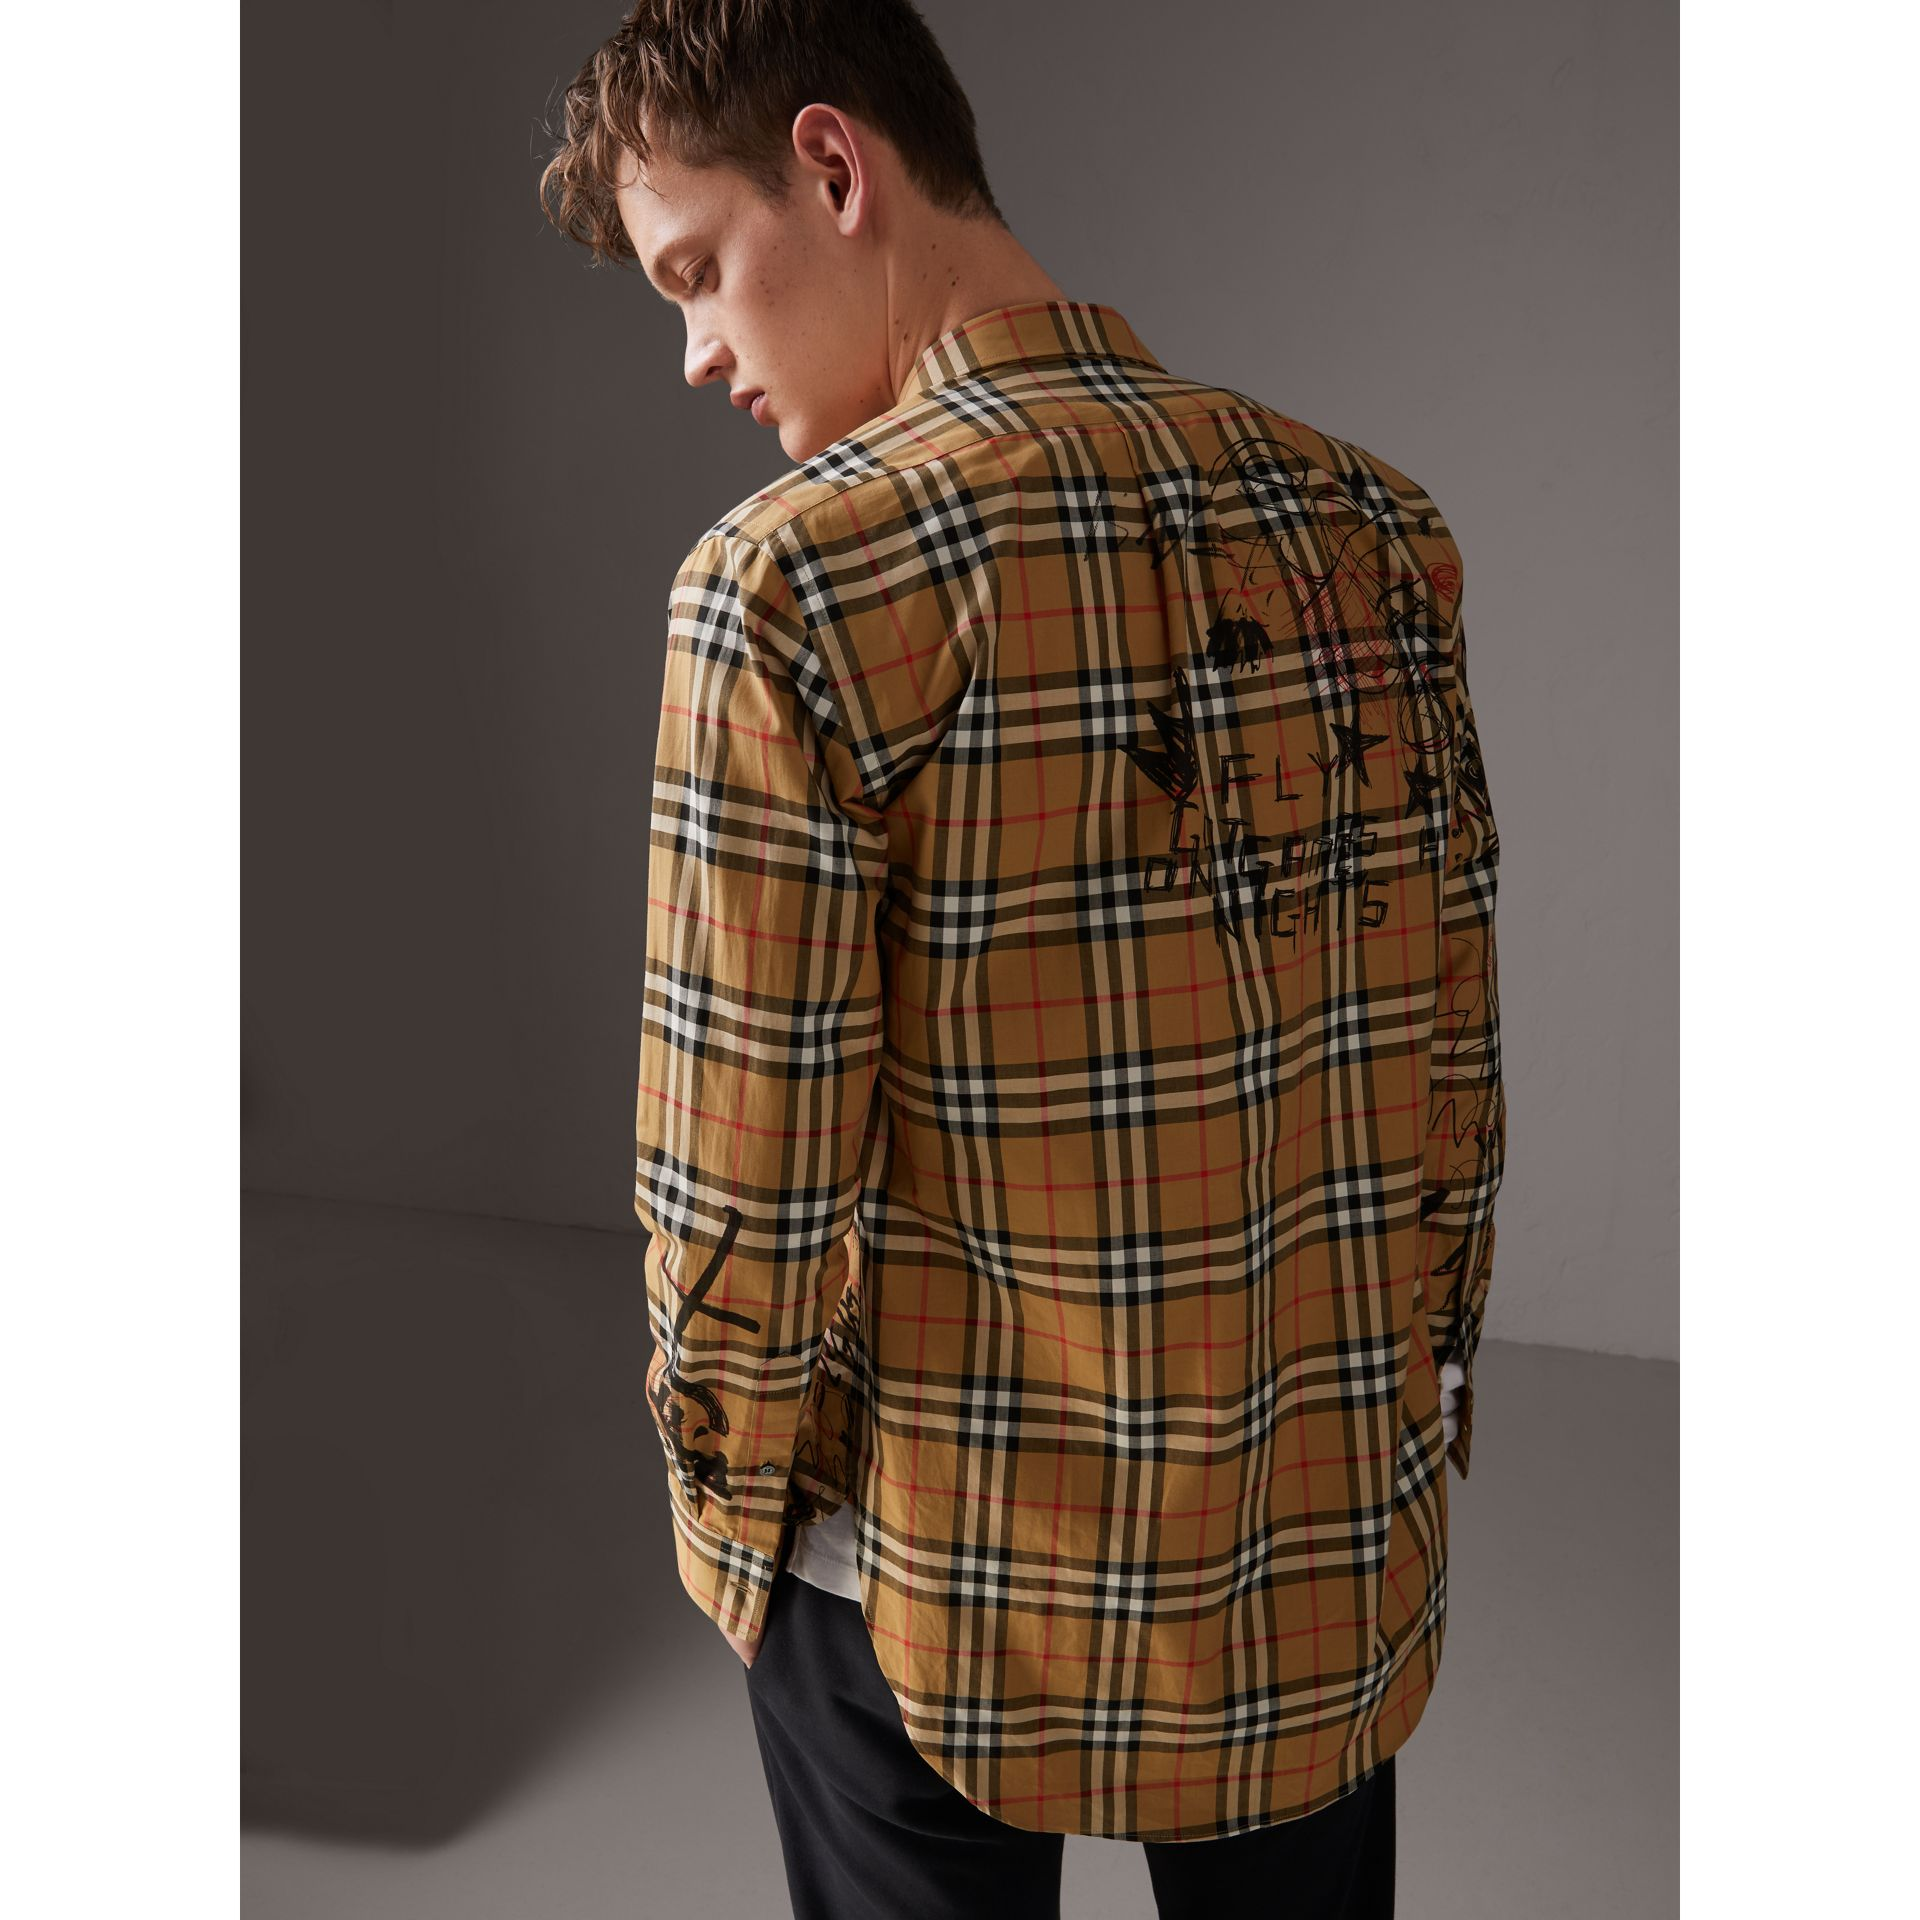 Burberry x Kris Wu Vintage Check Cotton Shirt in Antique Yellow - Men | Burberry United Kingdom - gallery image 2